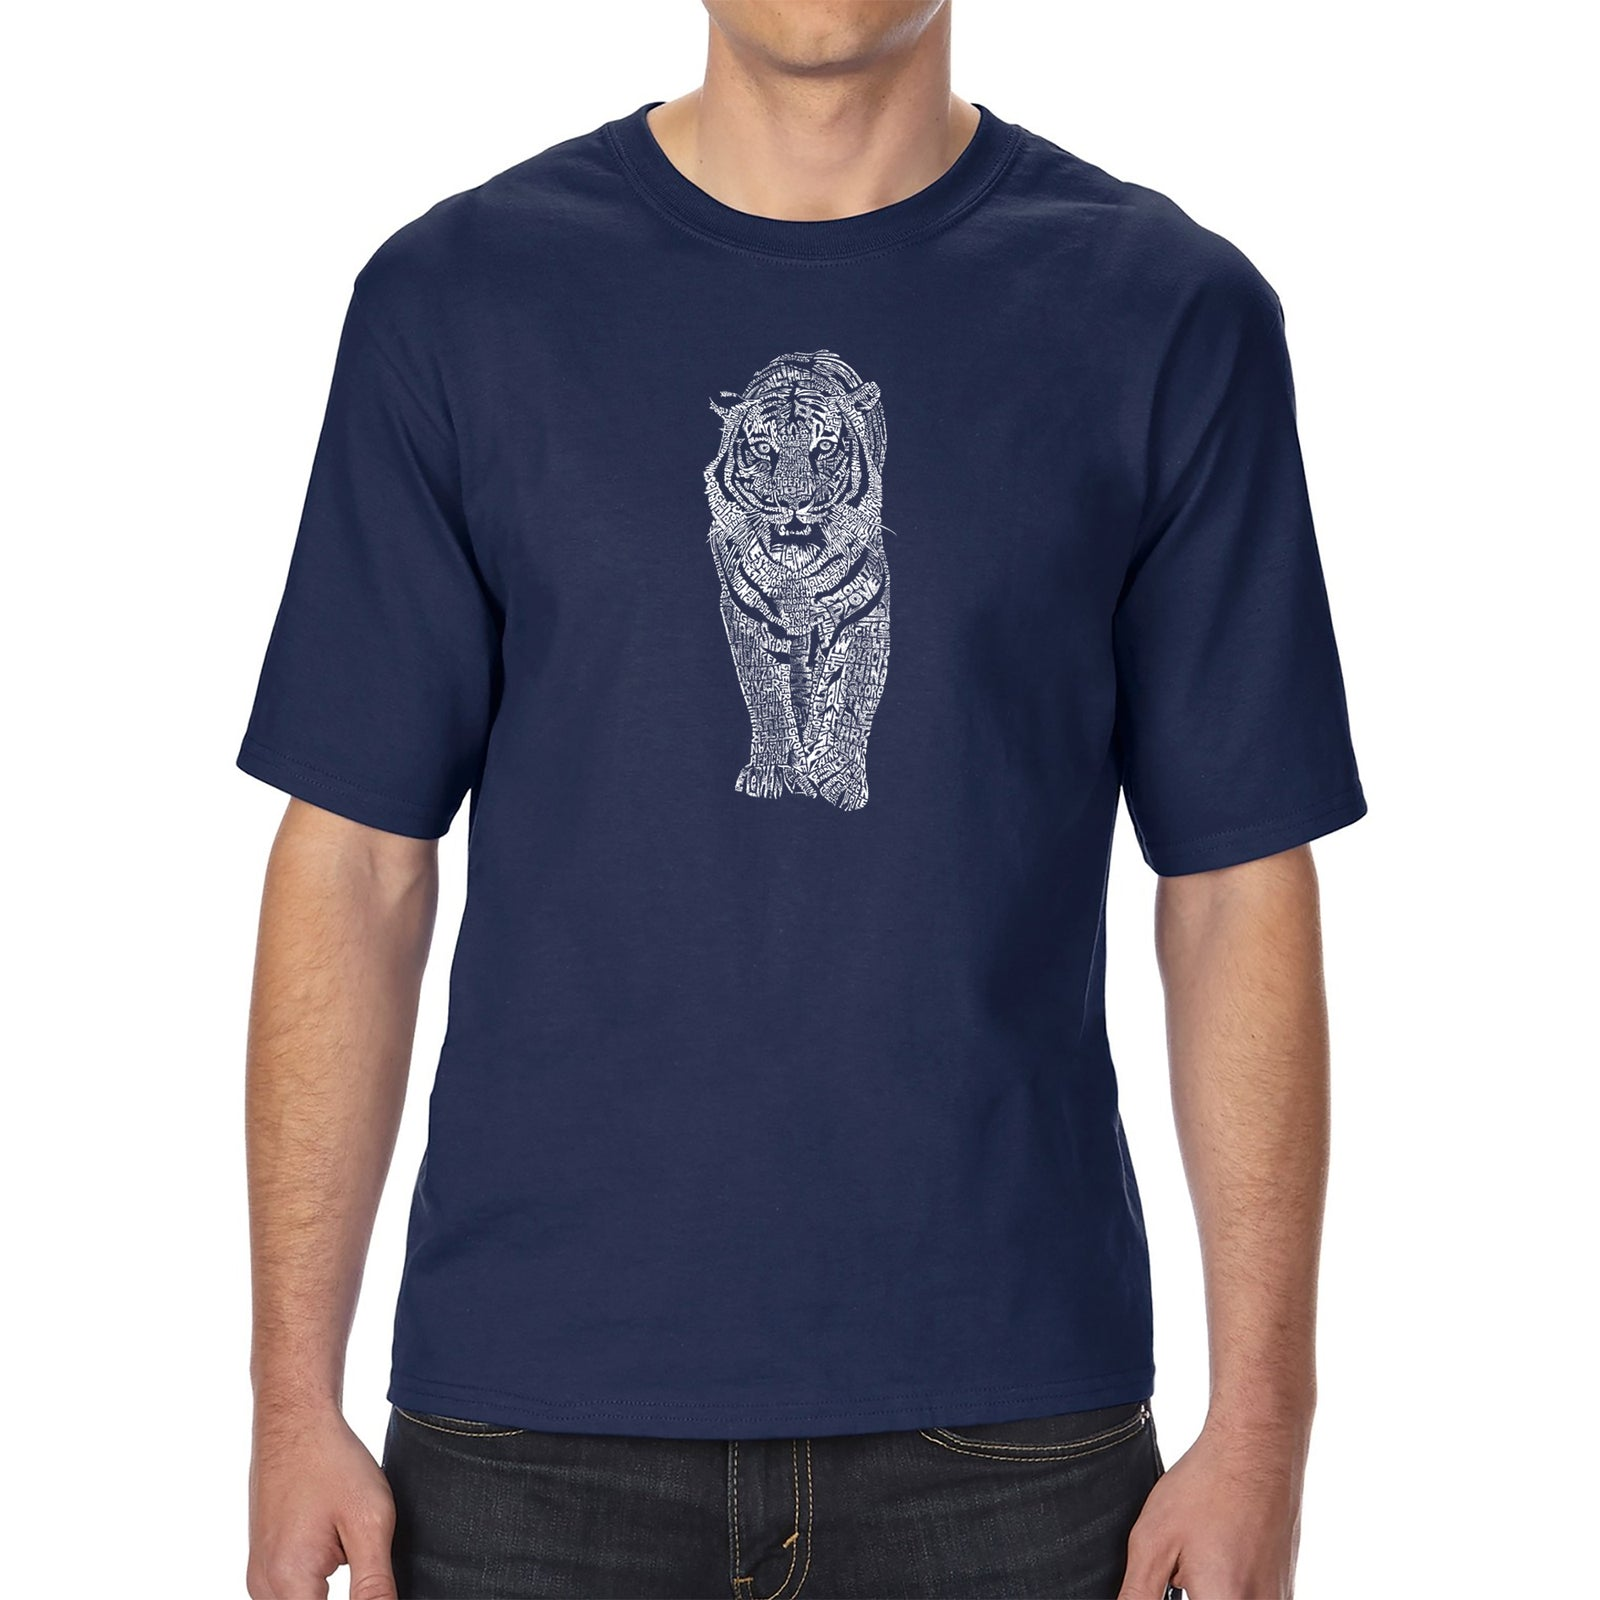 Men's Tall and Long Word Art T-shirt - TIGER